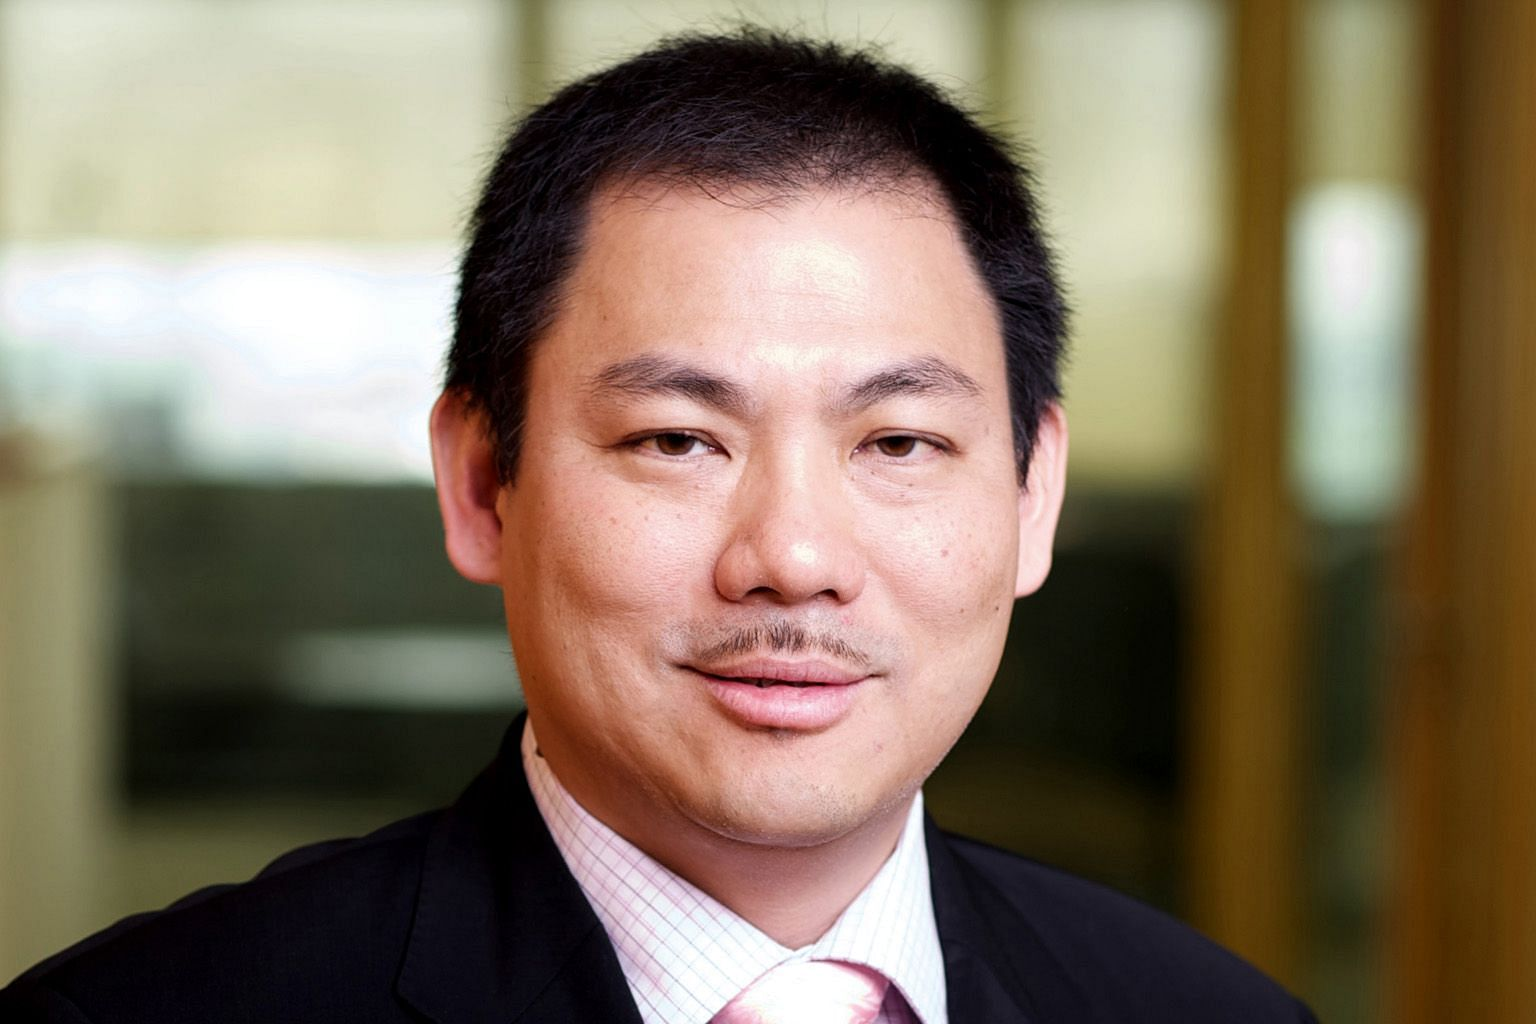 Tiong Seng Holdings' chief executive Pek Lian Guan is one of two company executives interviewed by the CPIB.